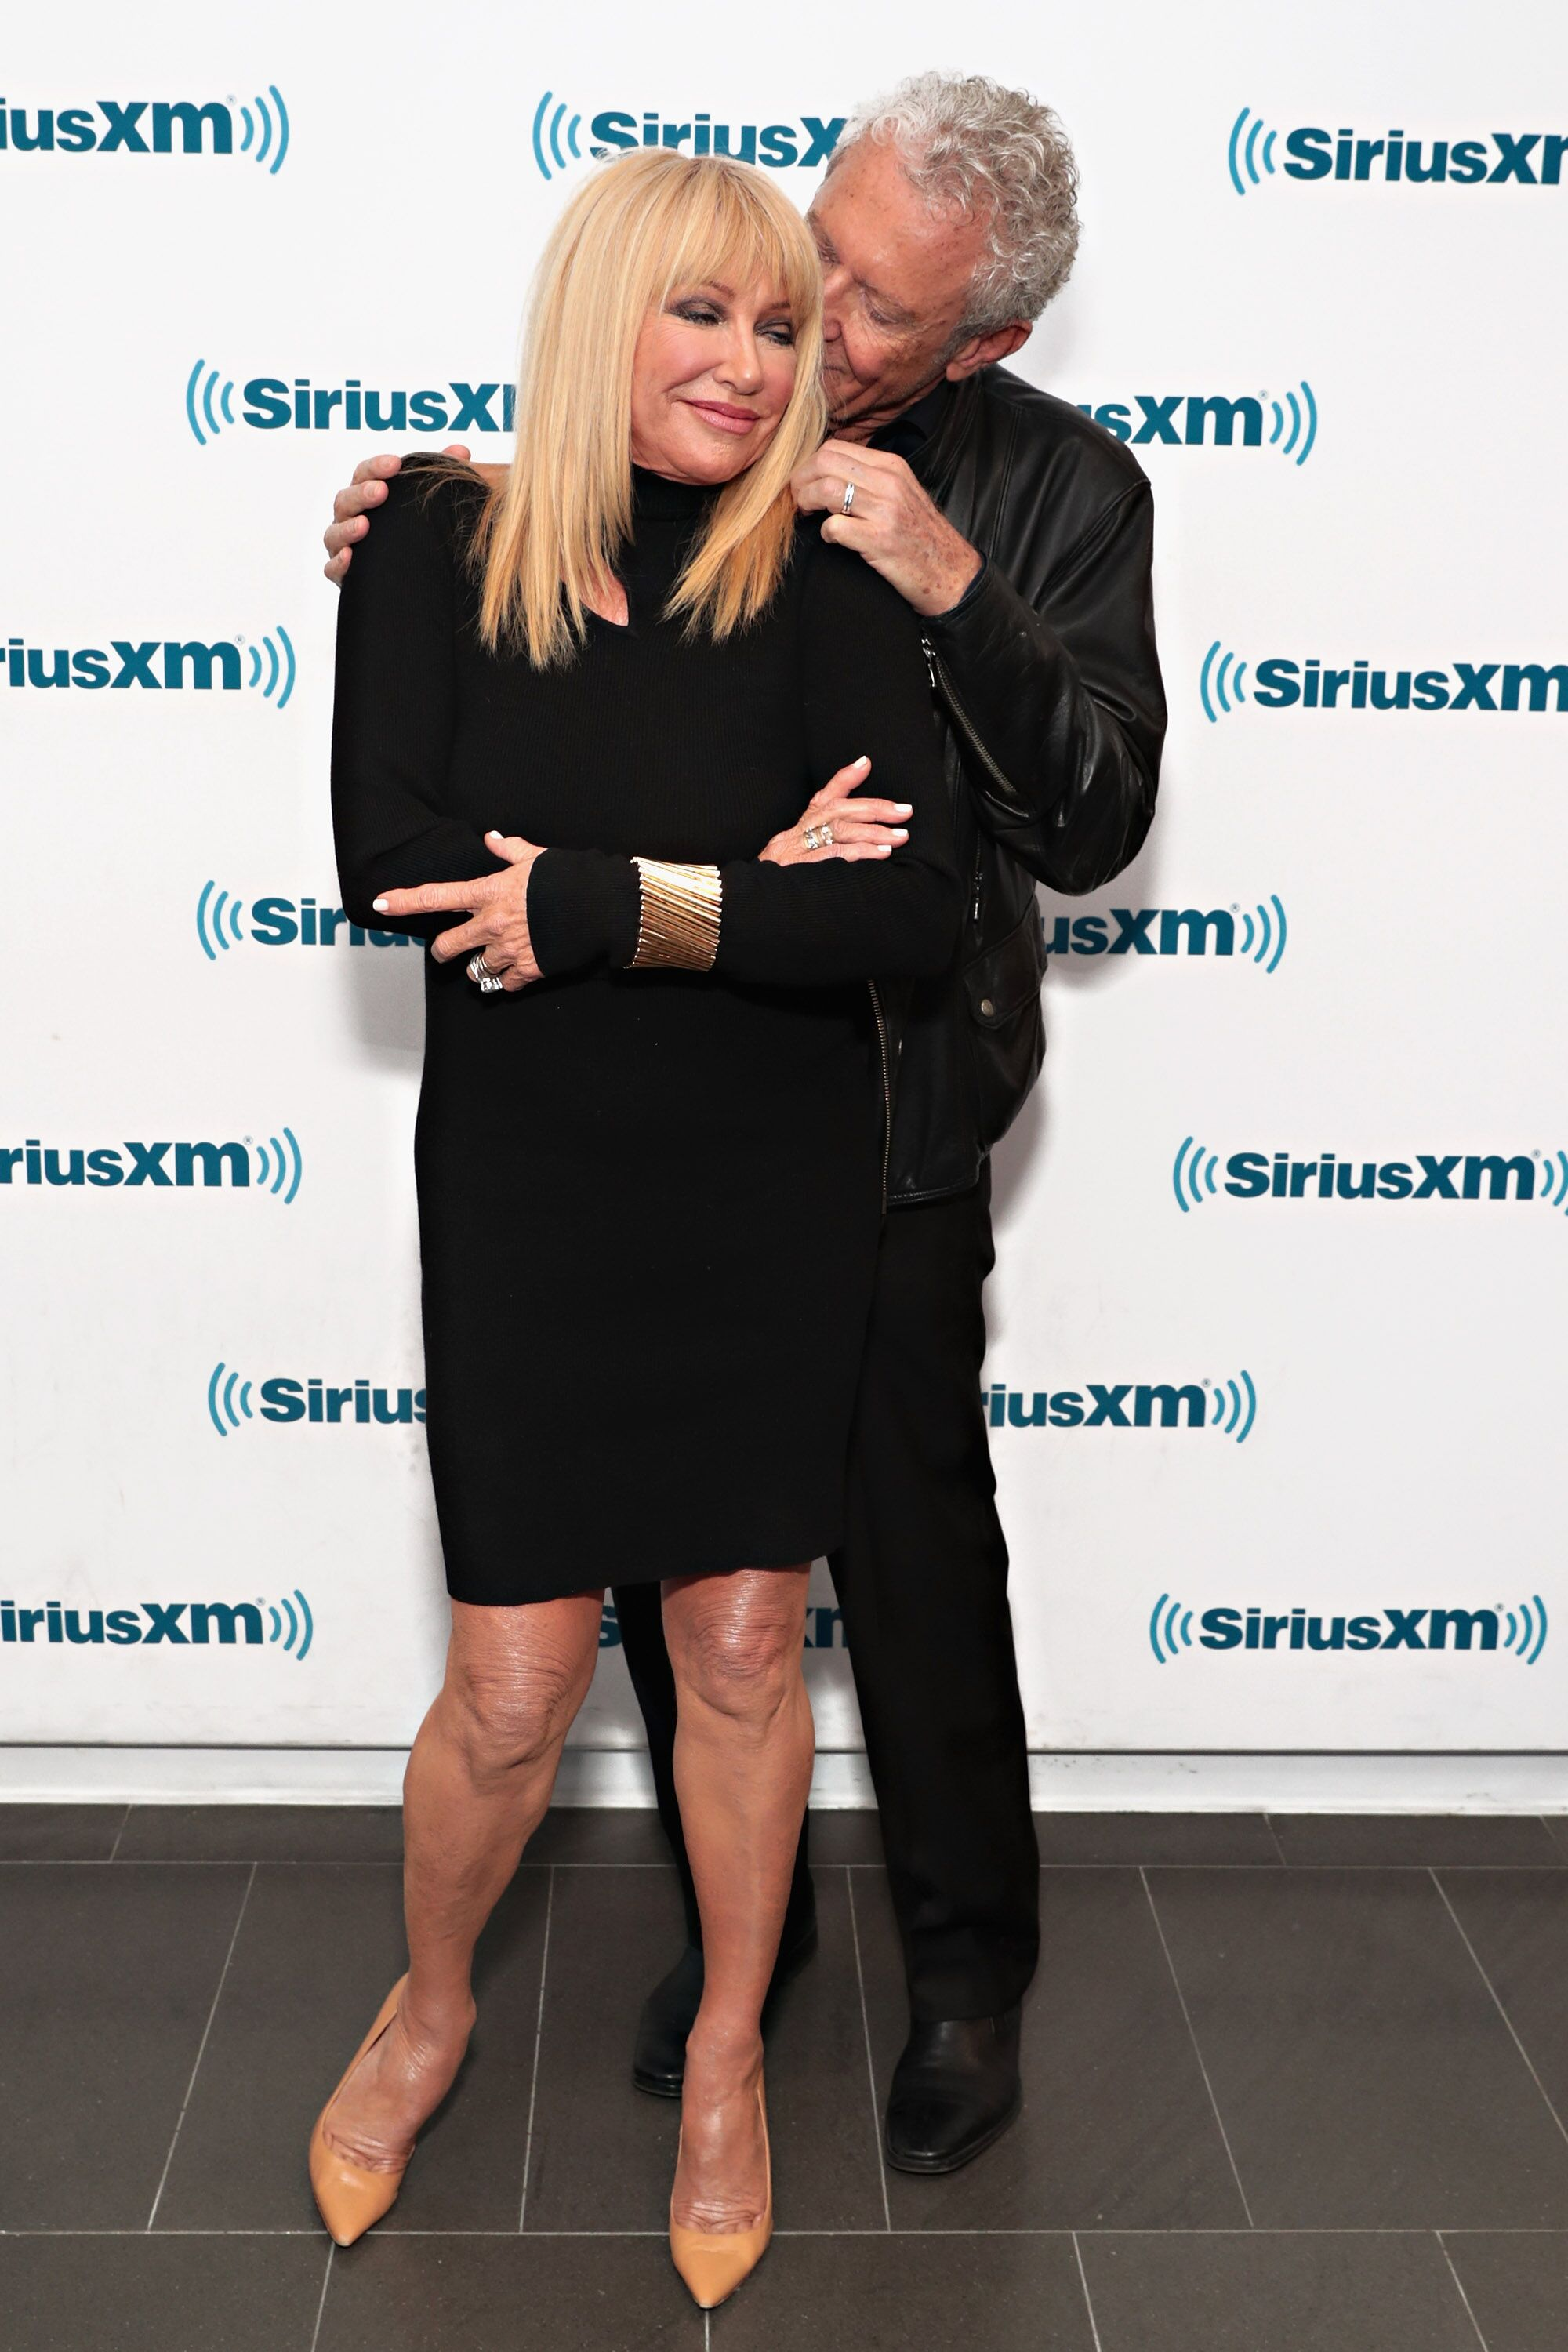 Suzanne Somers and husband Alan Hamel visit the SiriusXM Studios in 2017 | Source: Getty Images